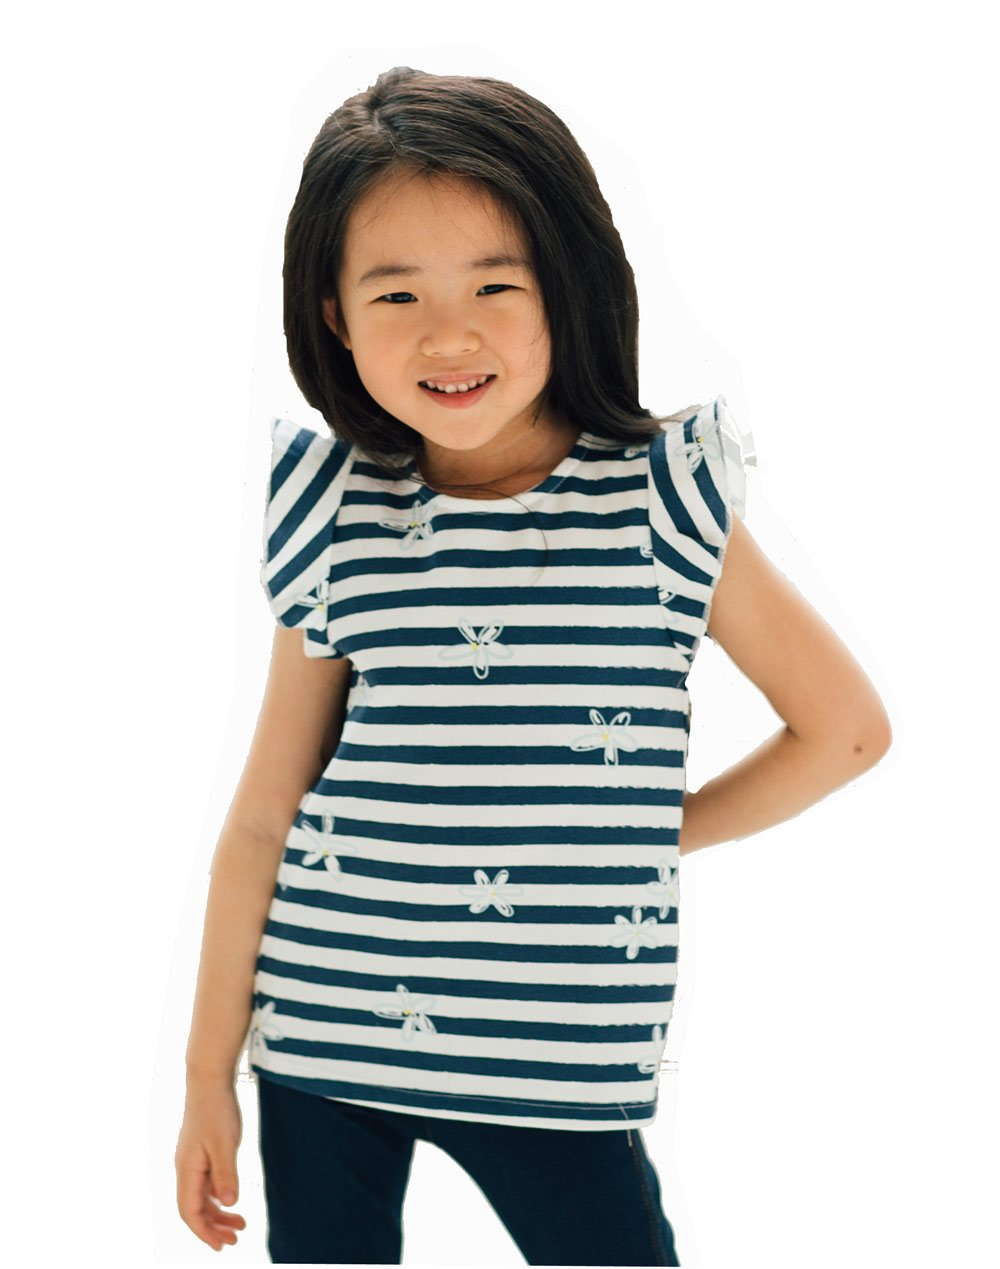 Artie - Flower Frills Girls Navy and White Striped Top - Stylemykid.com